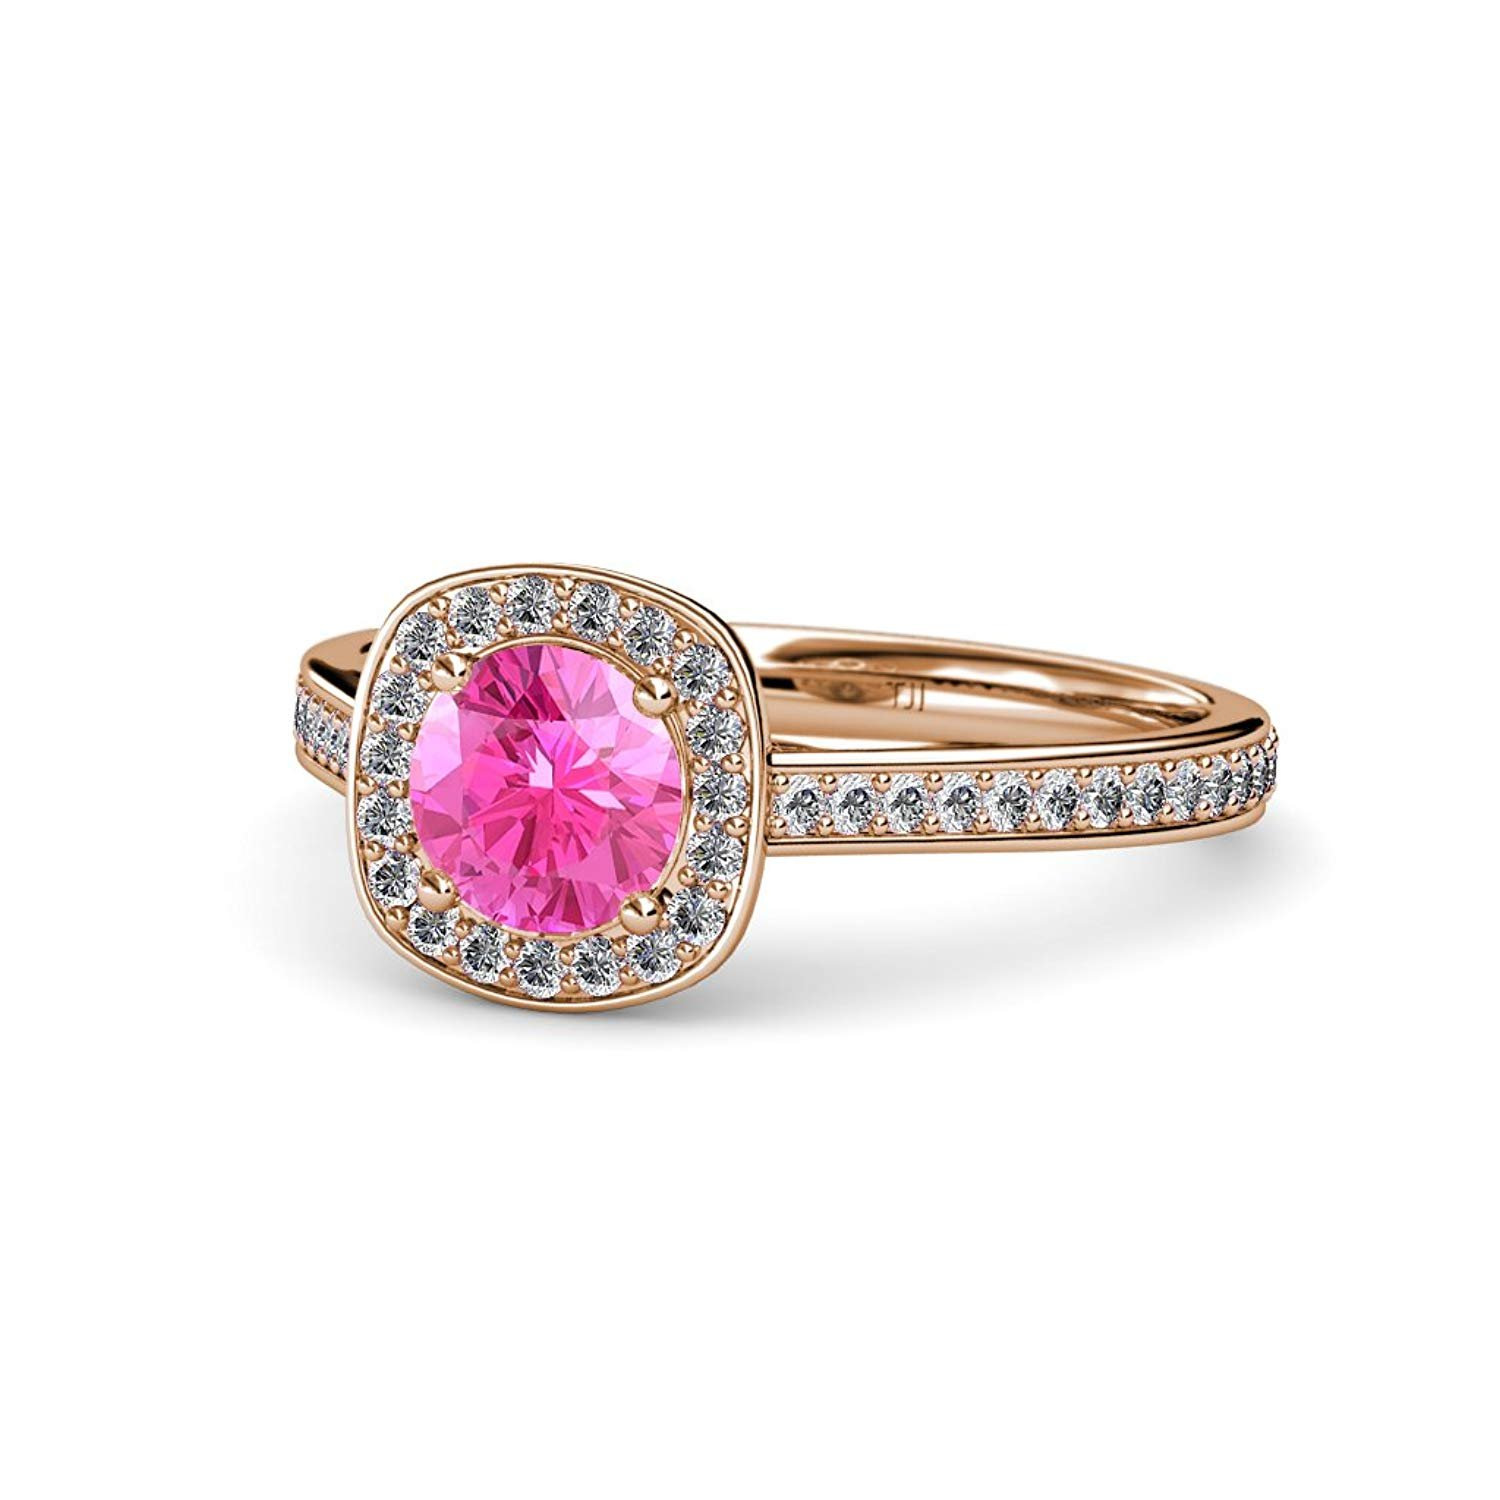 Pink Sapphire and Diamond (SI2-I1, G-H) Halo Engagement Ring 1.15 ct tw in 14K Rose Gold.size 5.0 by TriJewels